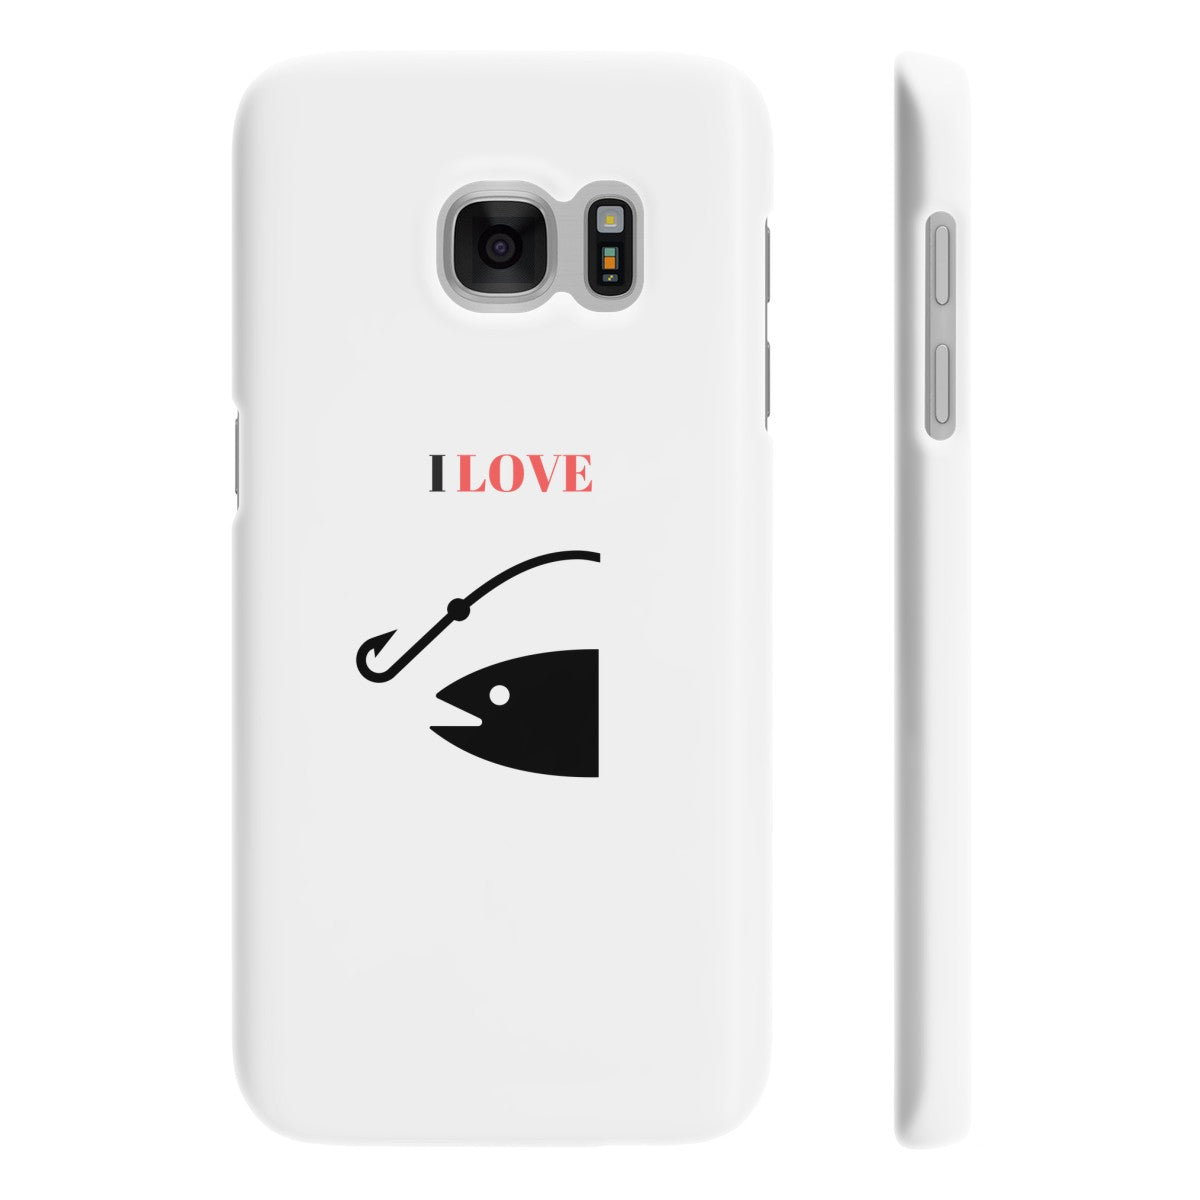 I Love Fishing  Slim Phone Cases Custom Item